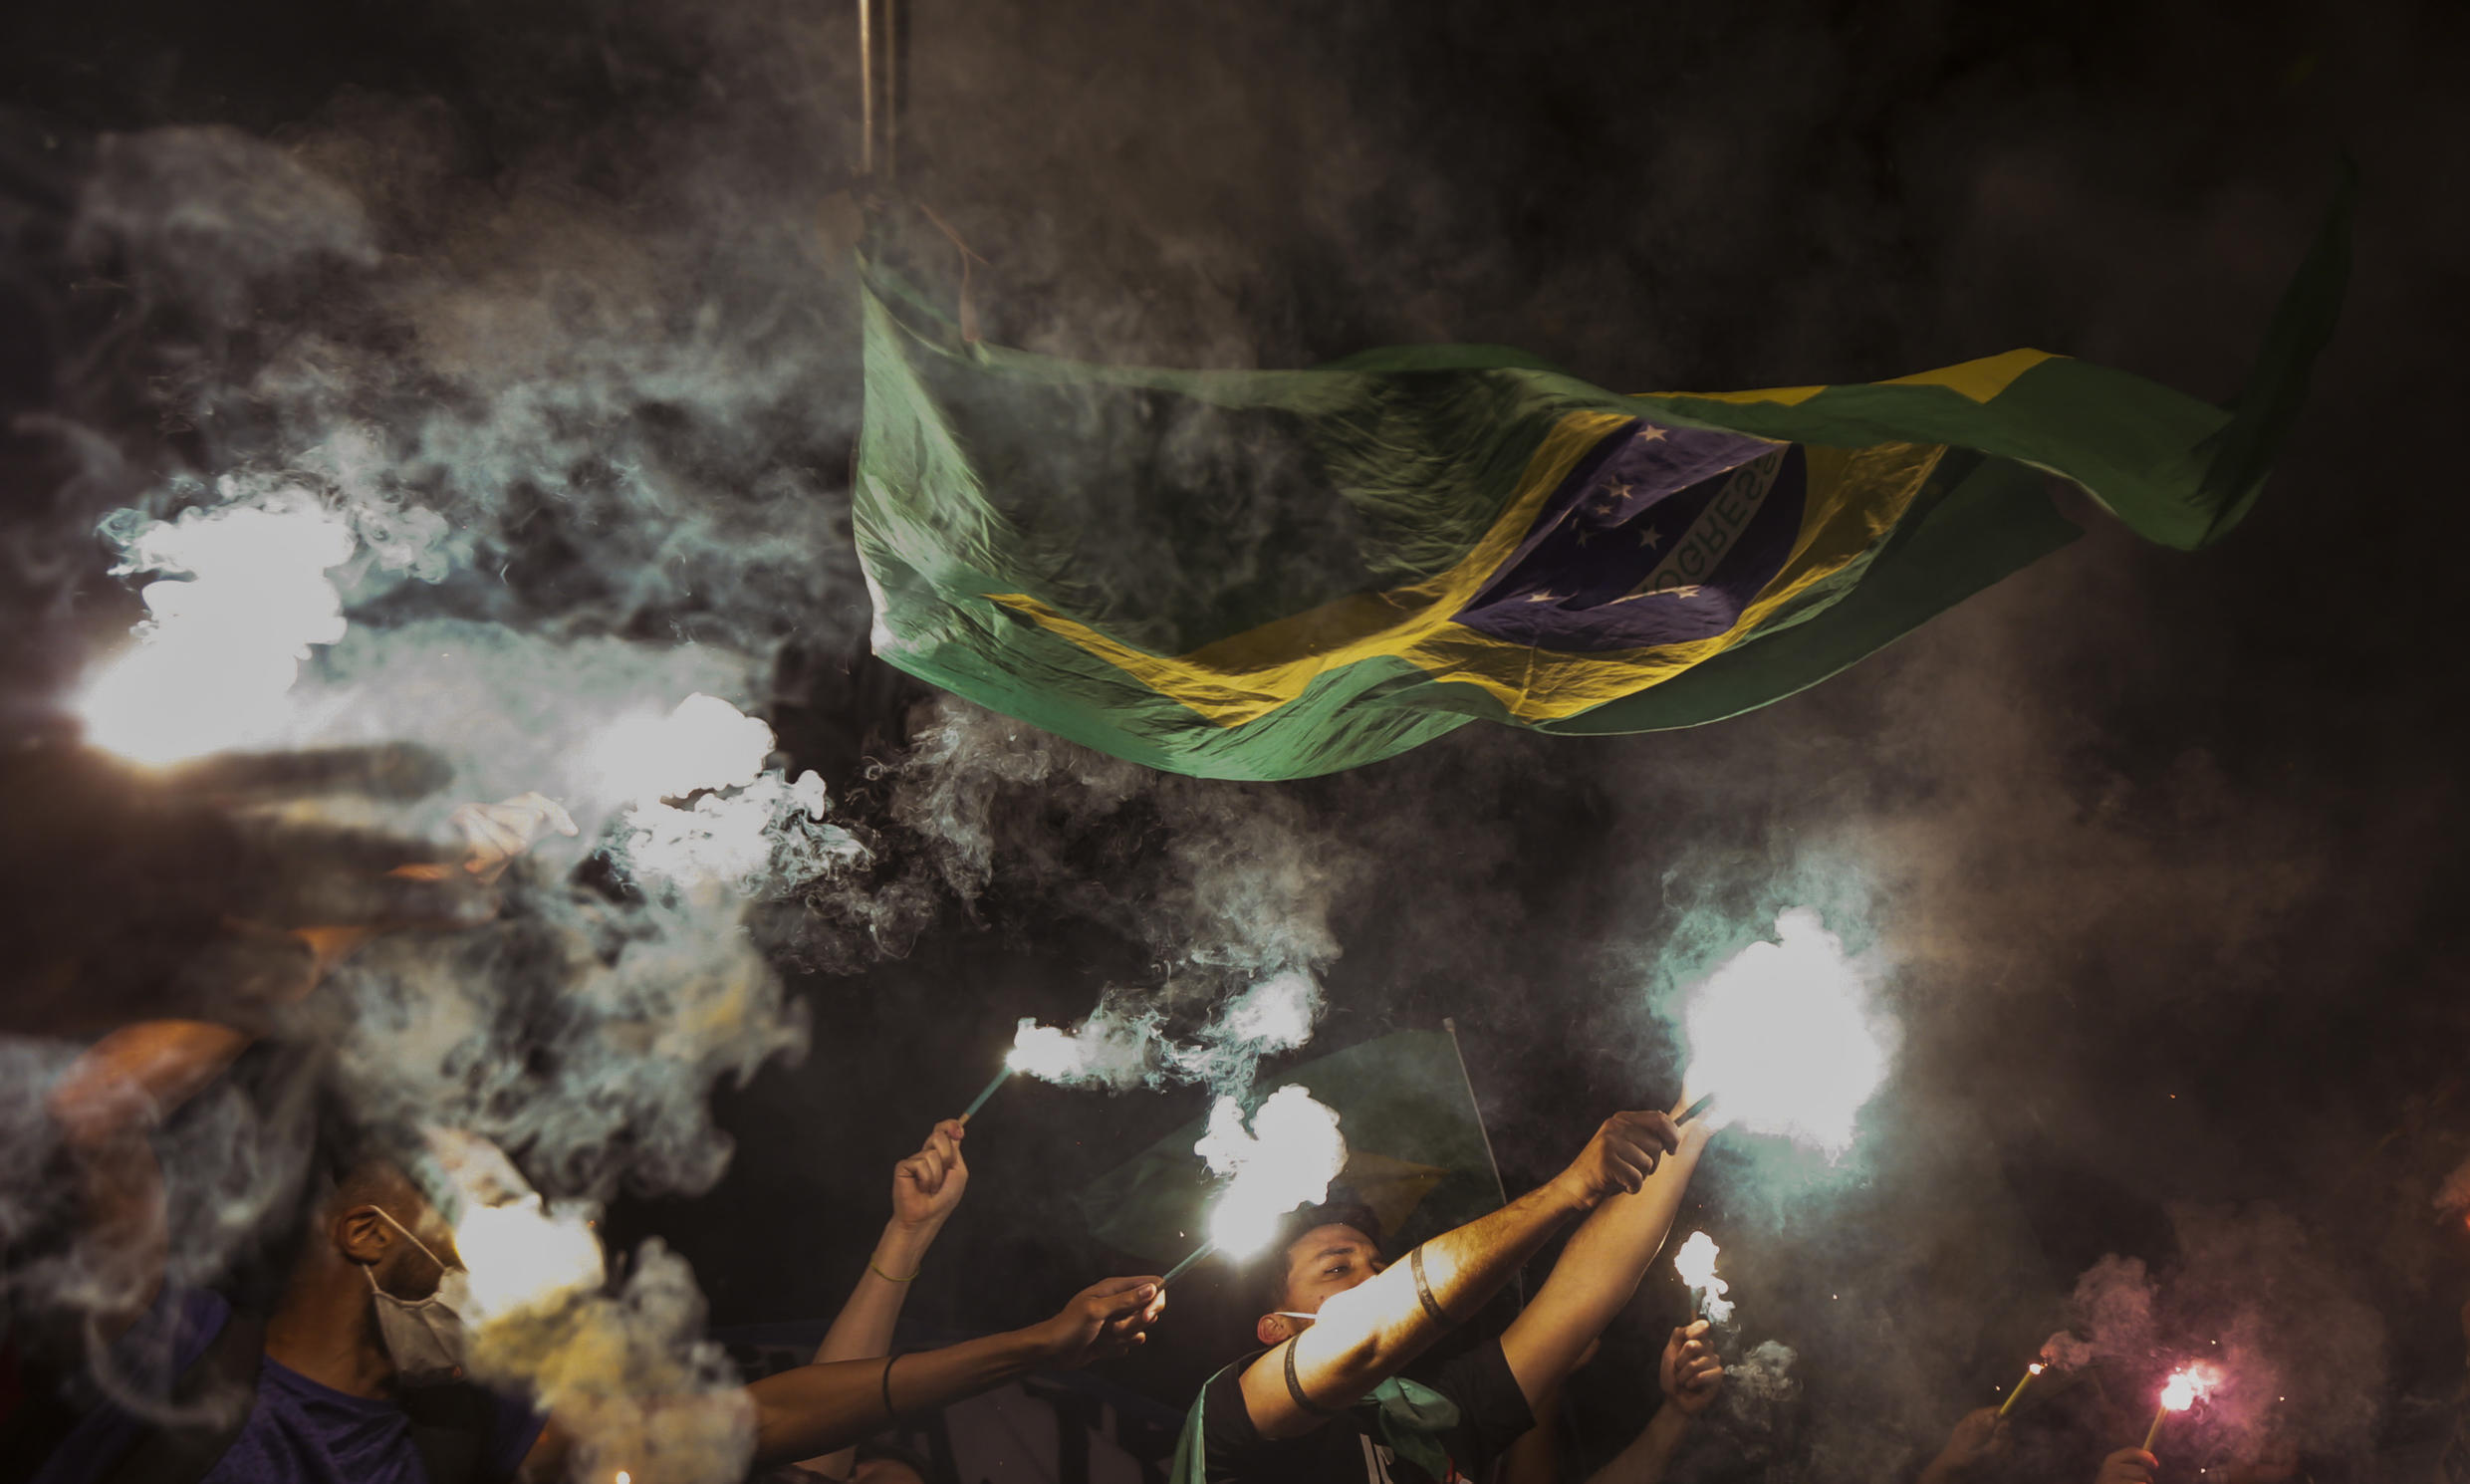 Opposition parties and other groups protest against Brazilian President Jair Bolsonaro's handling of the Covid-19 pandemic in Sao Paulo on June 19, 2021